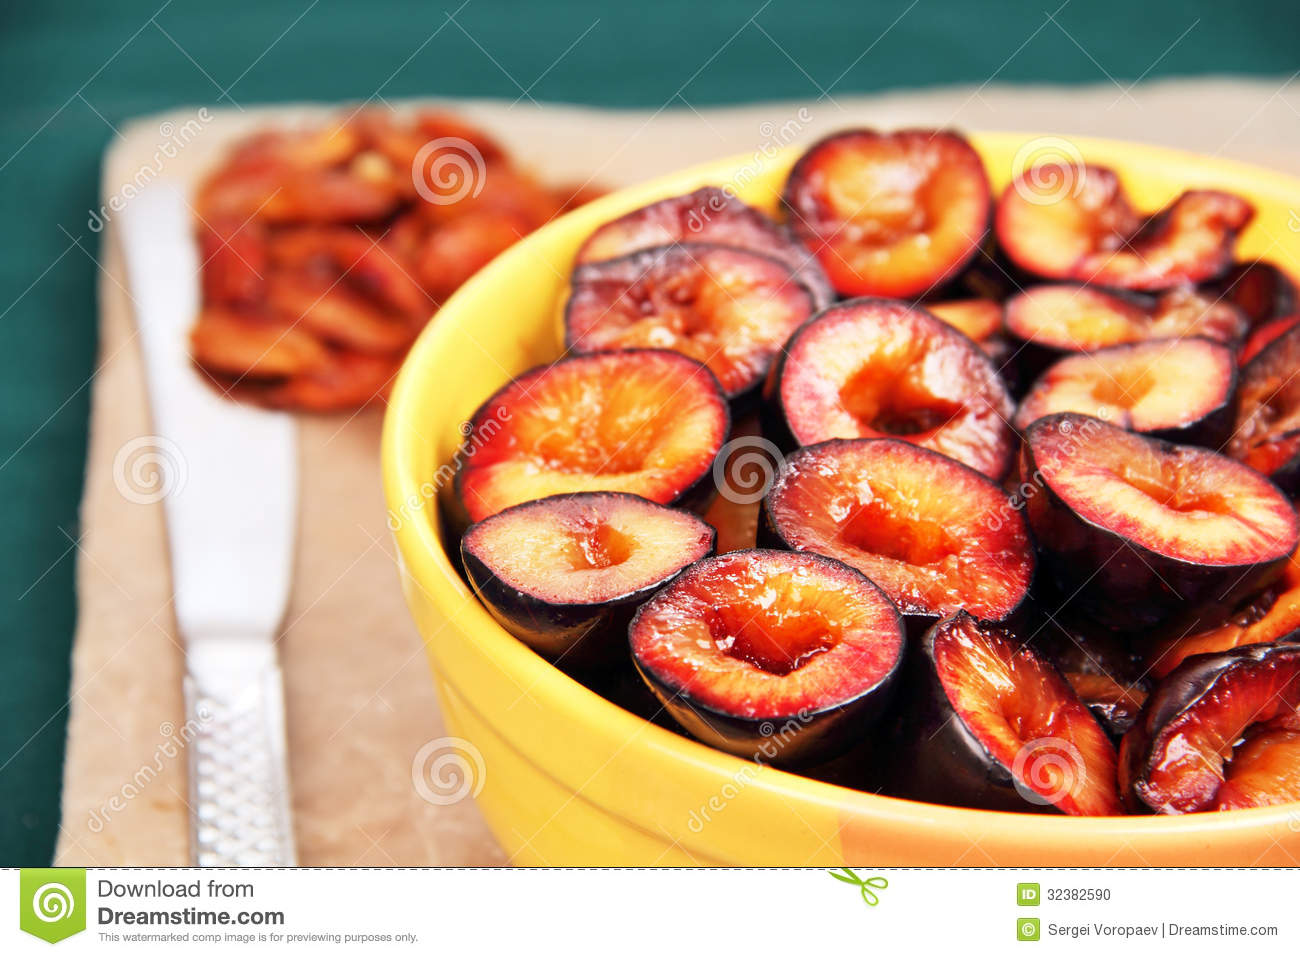 how to cut a plum into wedges